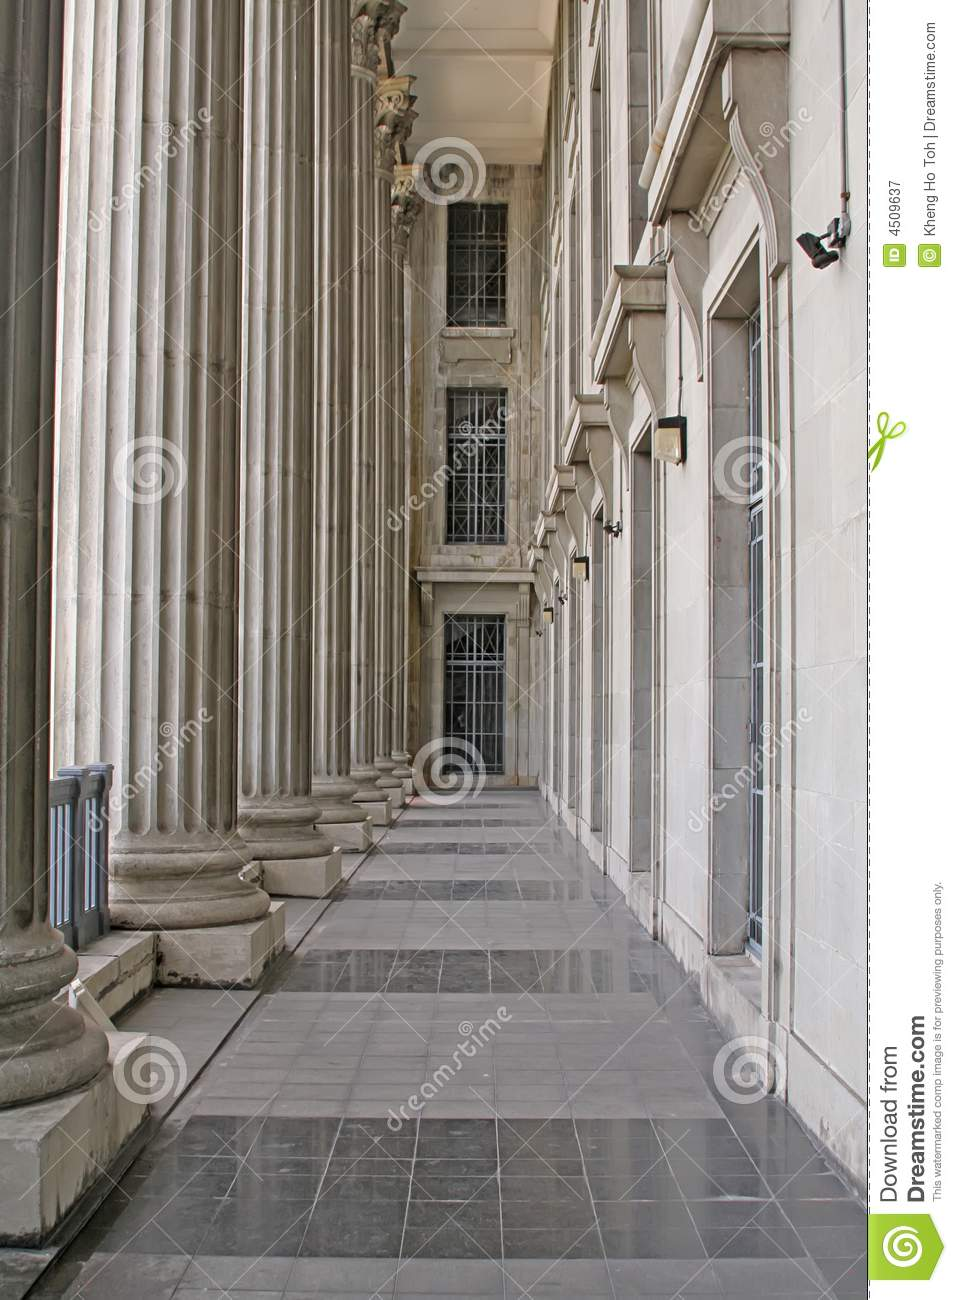 Construcion Stone Column : Stone columns in a judicial law building royalty free